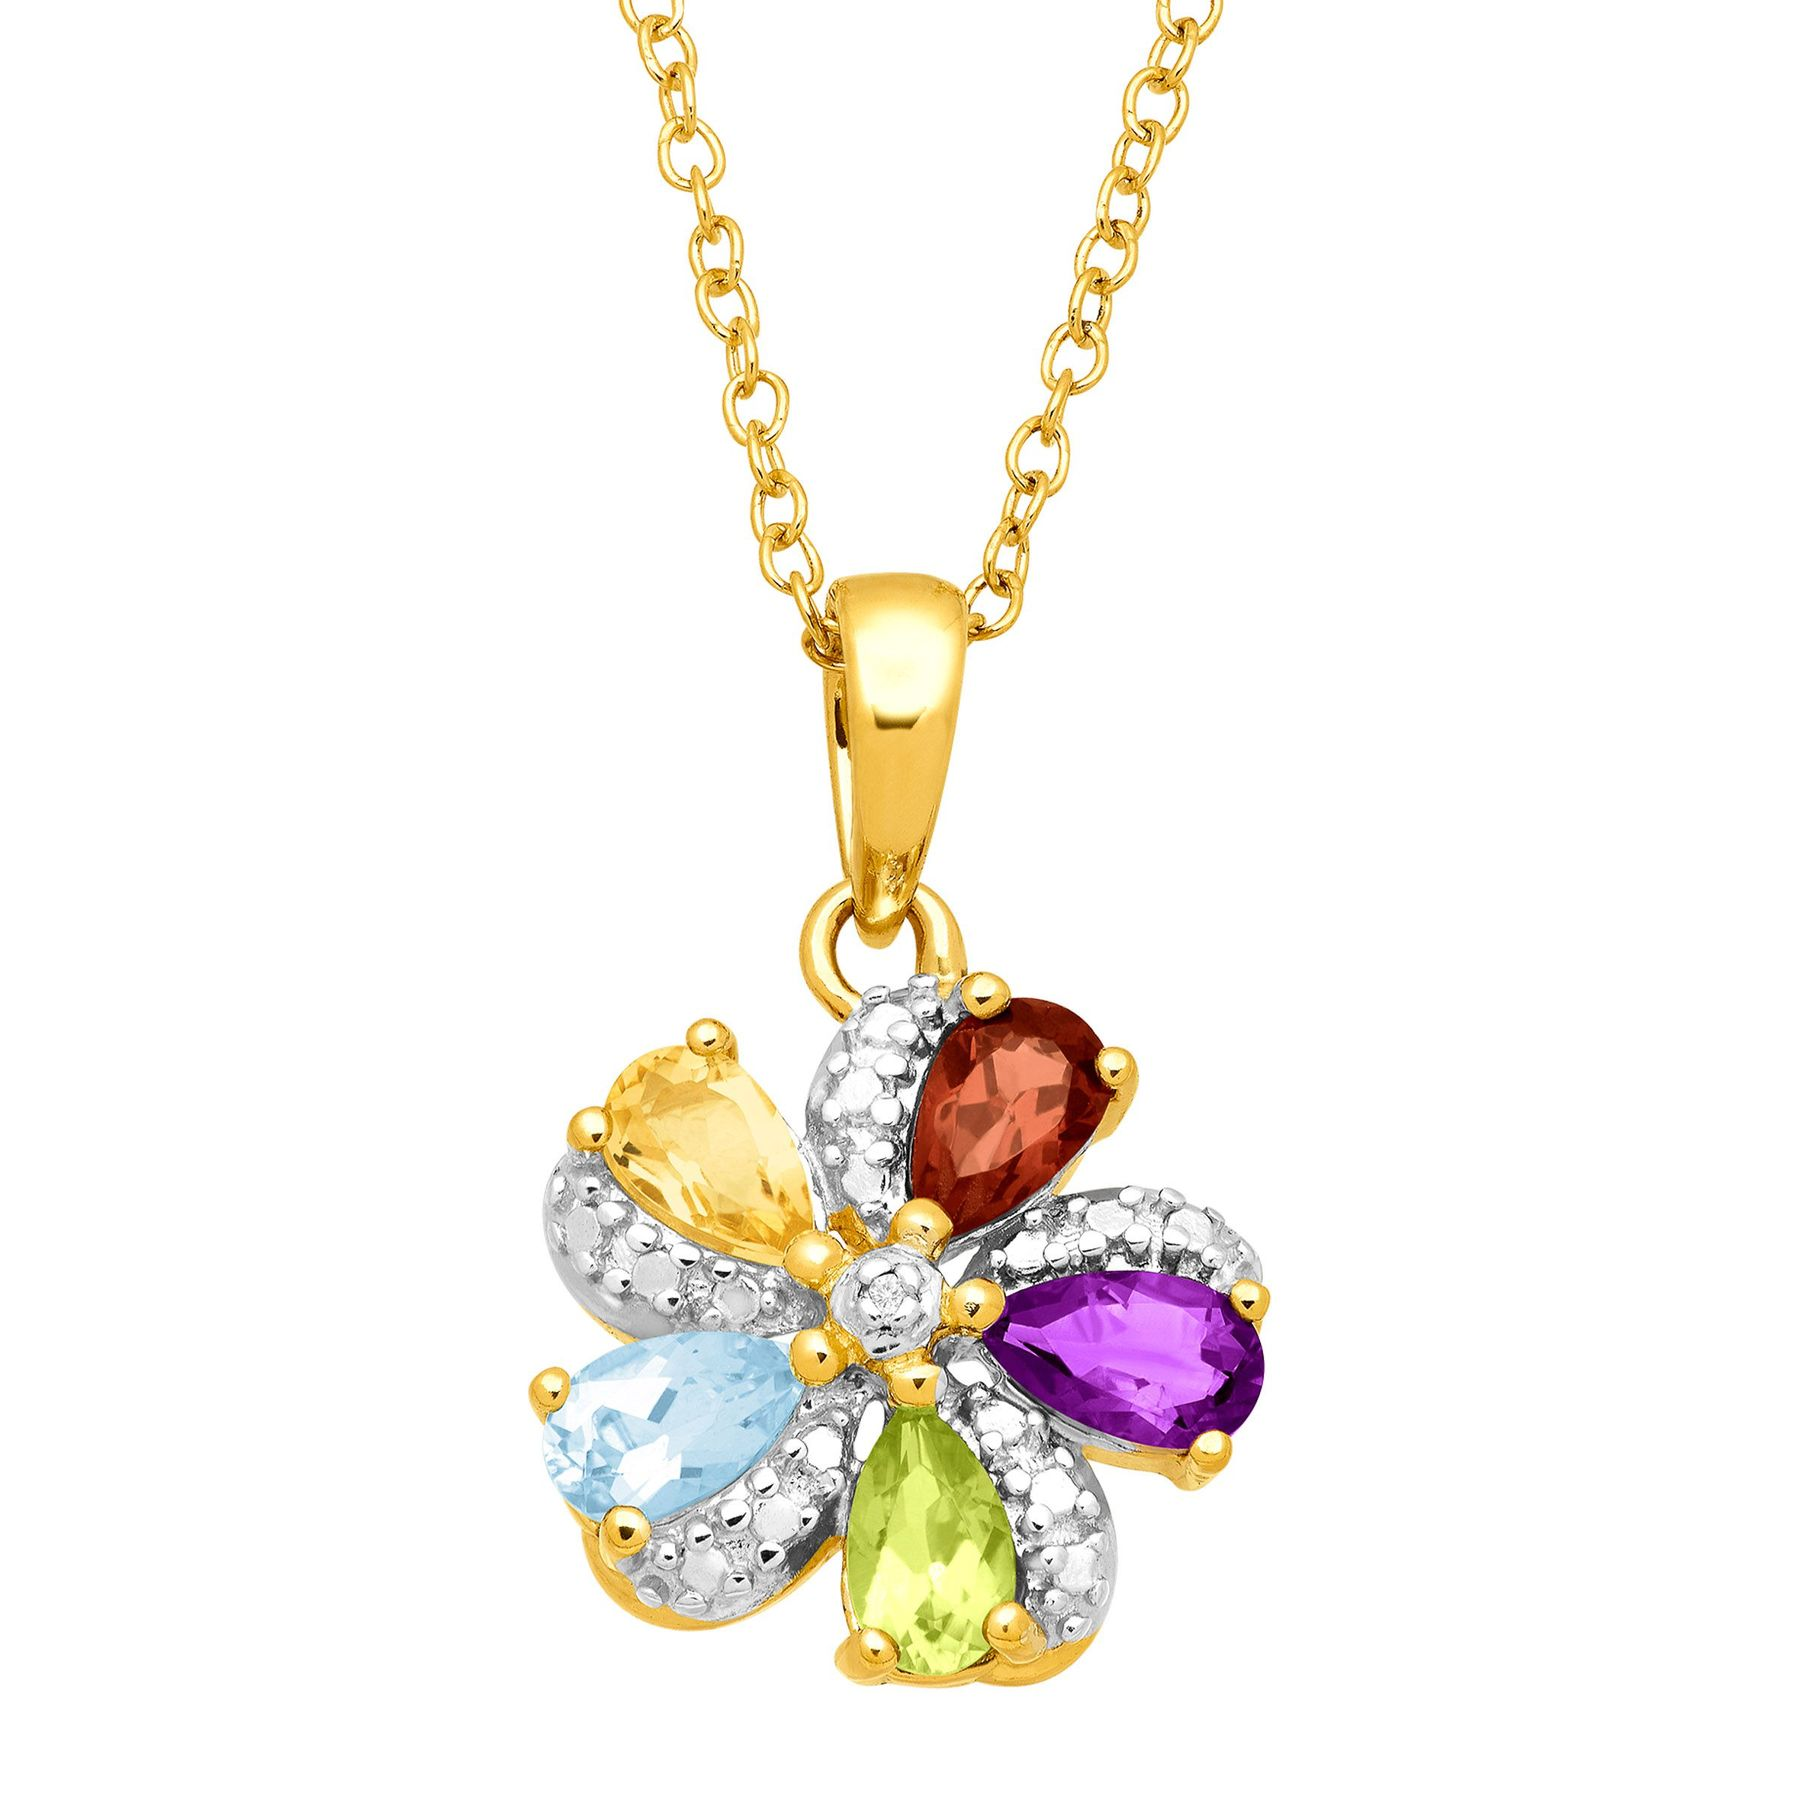 necklace flower laura white products pendant chain penny preville double gold